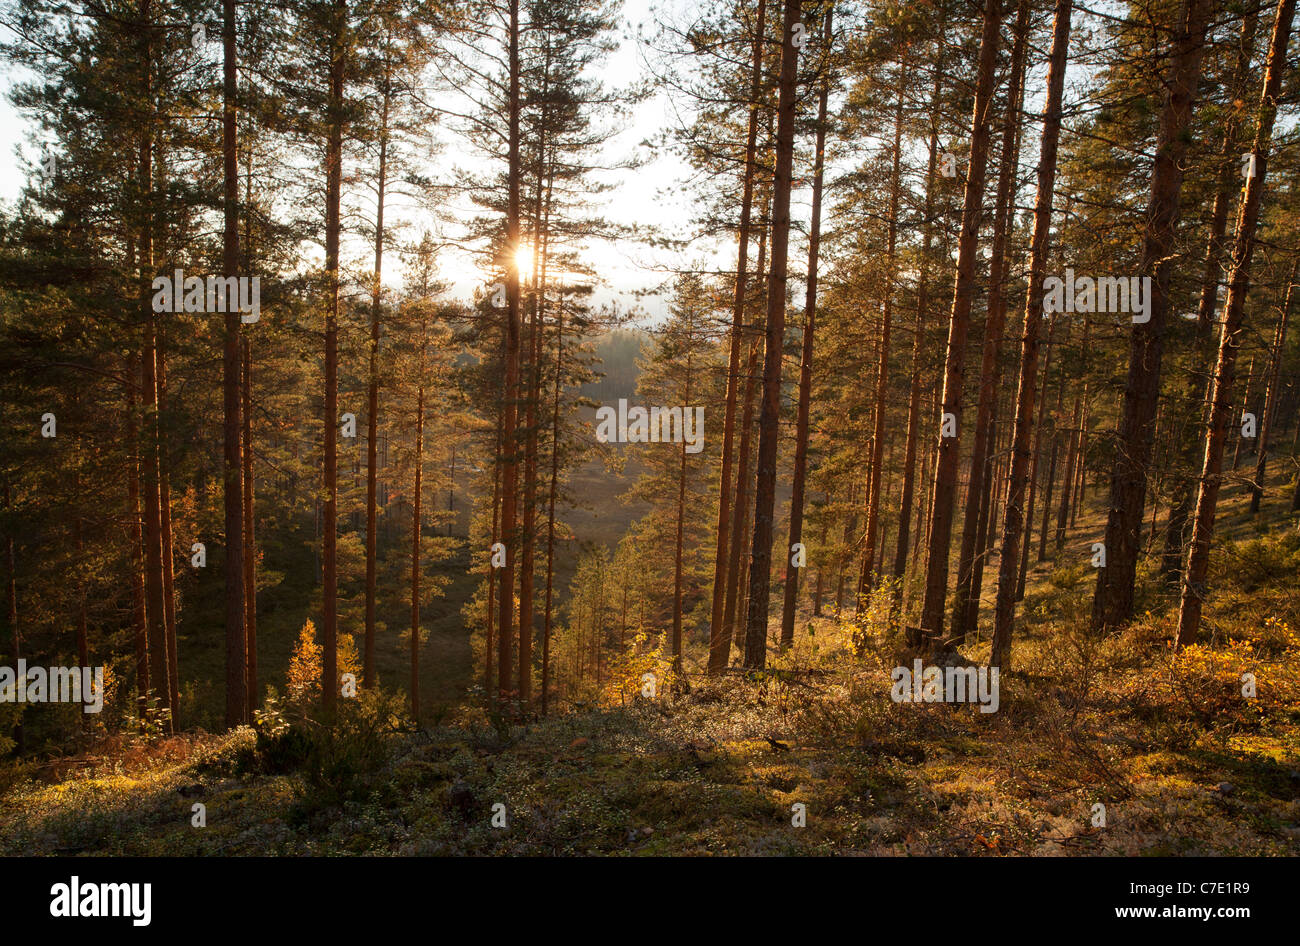 Young pine ( pinus sylvestris ) forest growing on a dry ridge , Finland - Stock Image